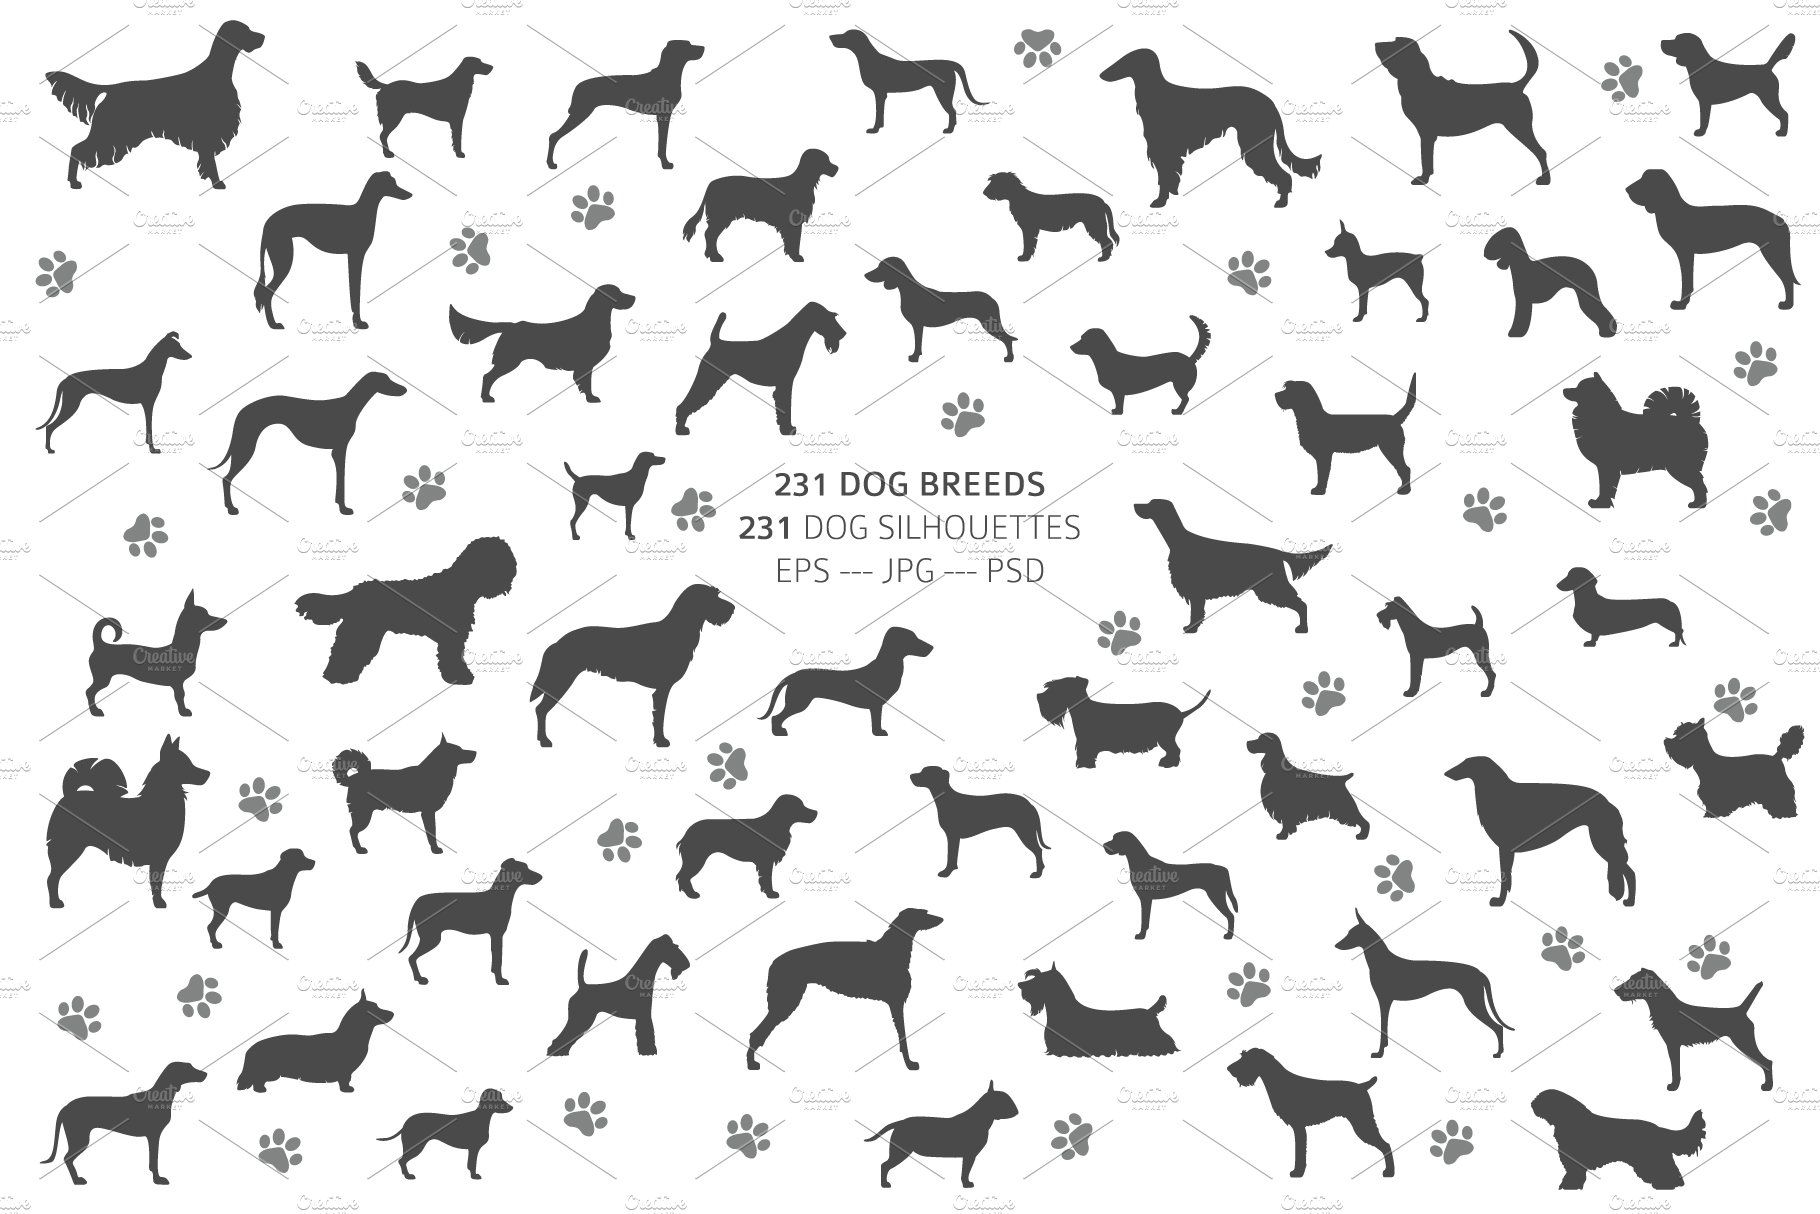 Hunting Dogs World Encyclopedia By A S Design Shop On